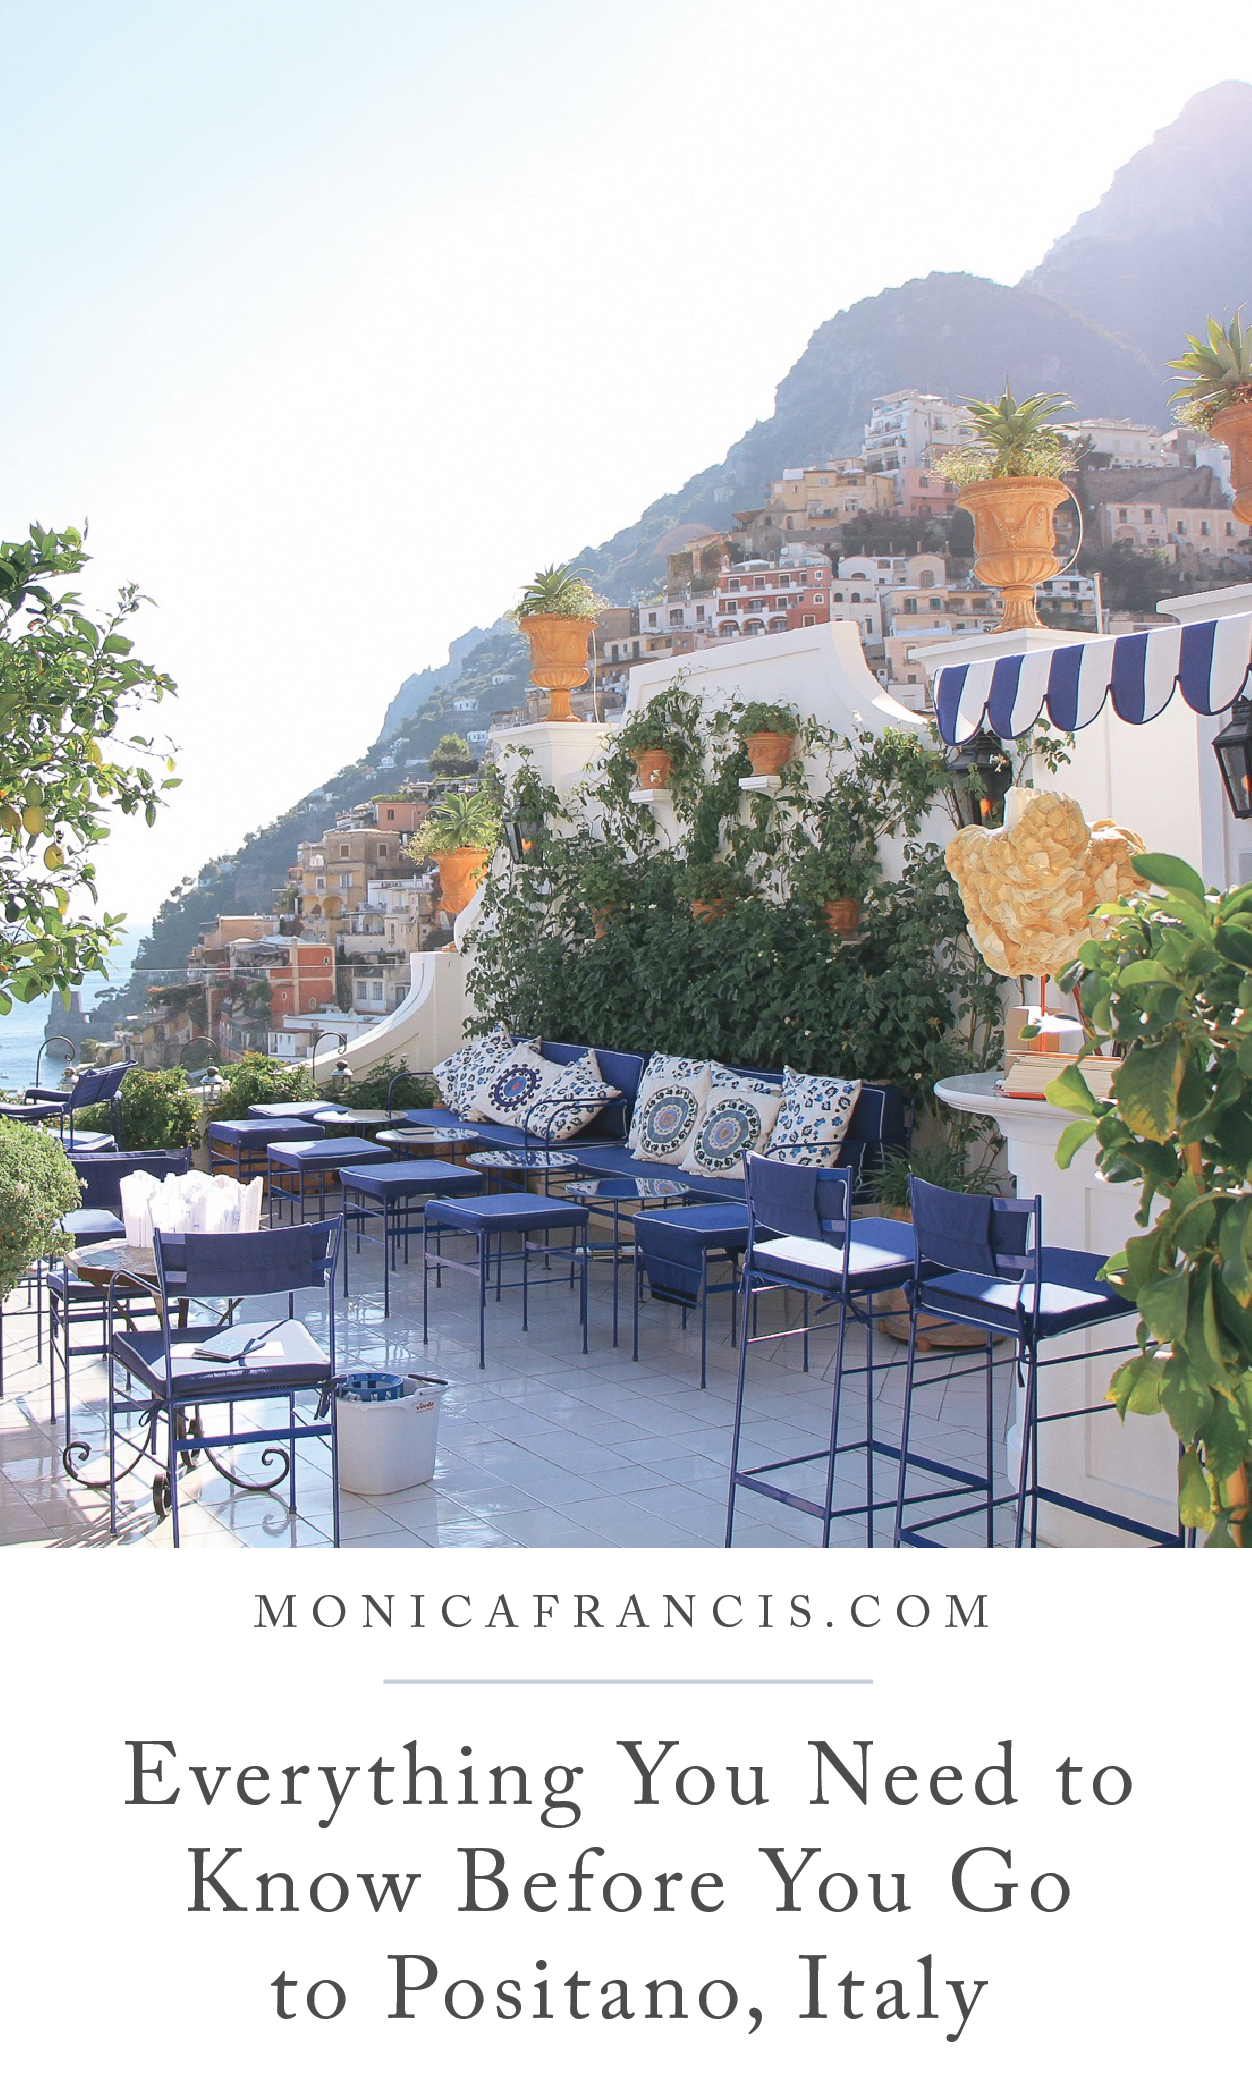 My Complete Guide to the Best of Positano, Italy